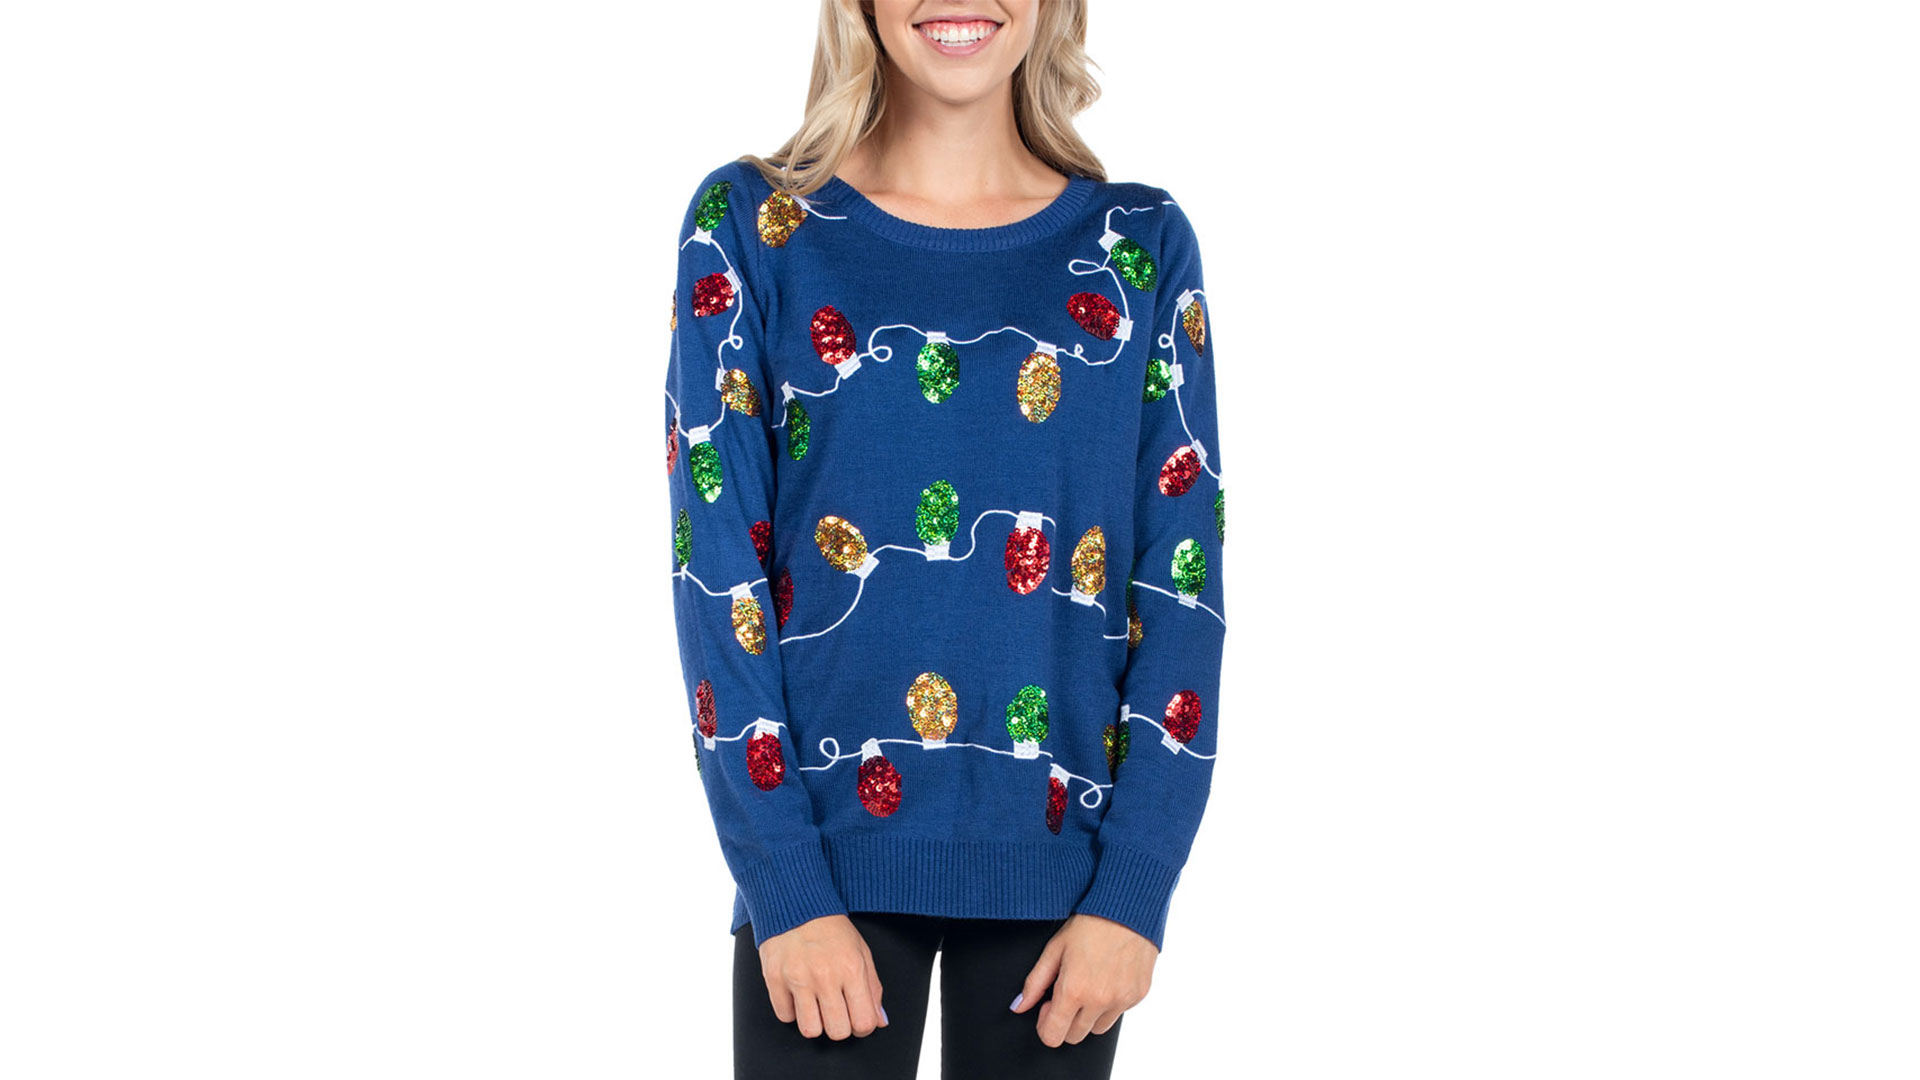 Glowing Christmas Lights Sweater